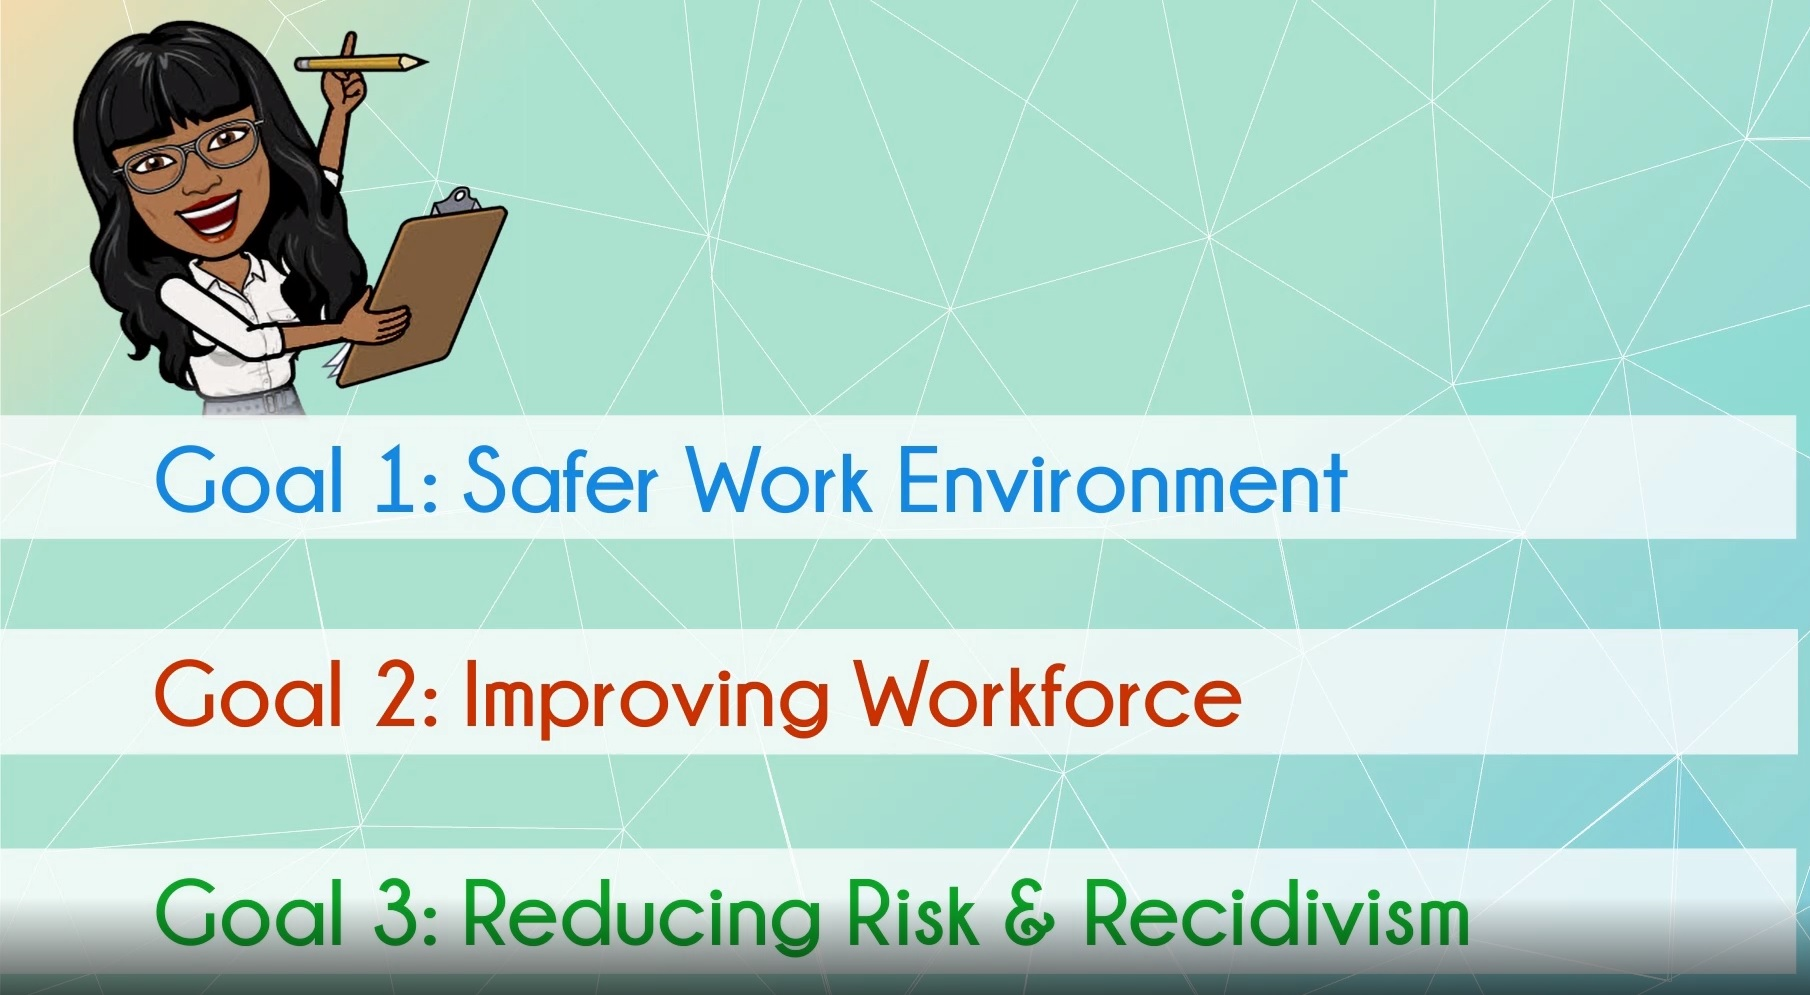 Goals: Safer Work Environment, Improving Workforce, Reducing Risk and Recidivism